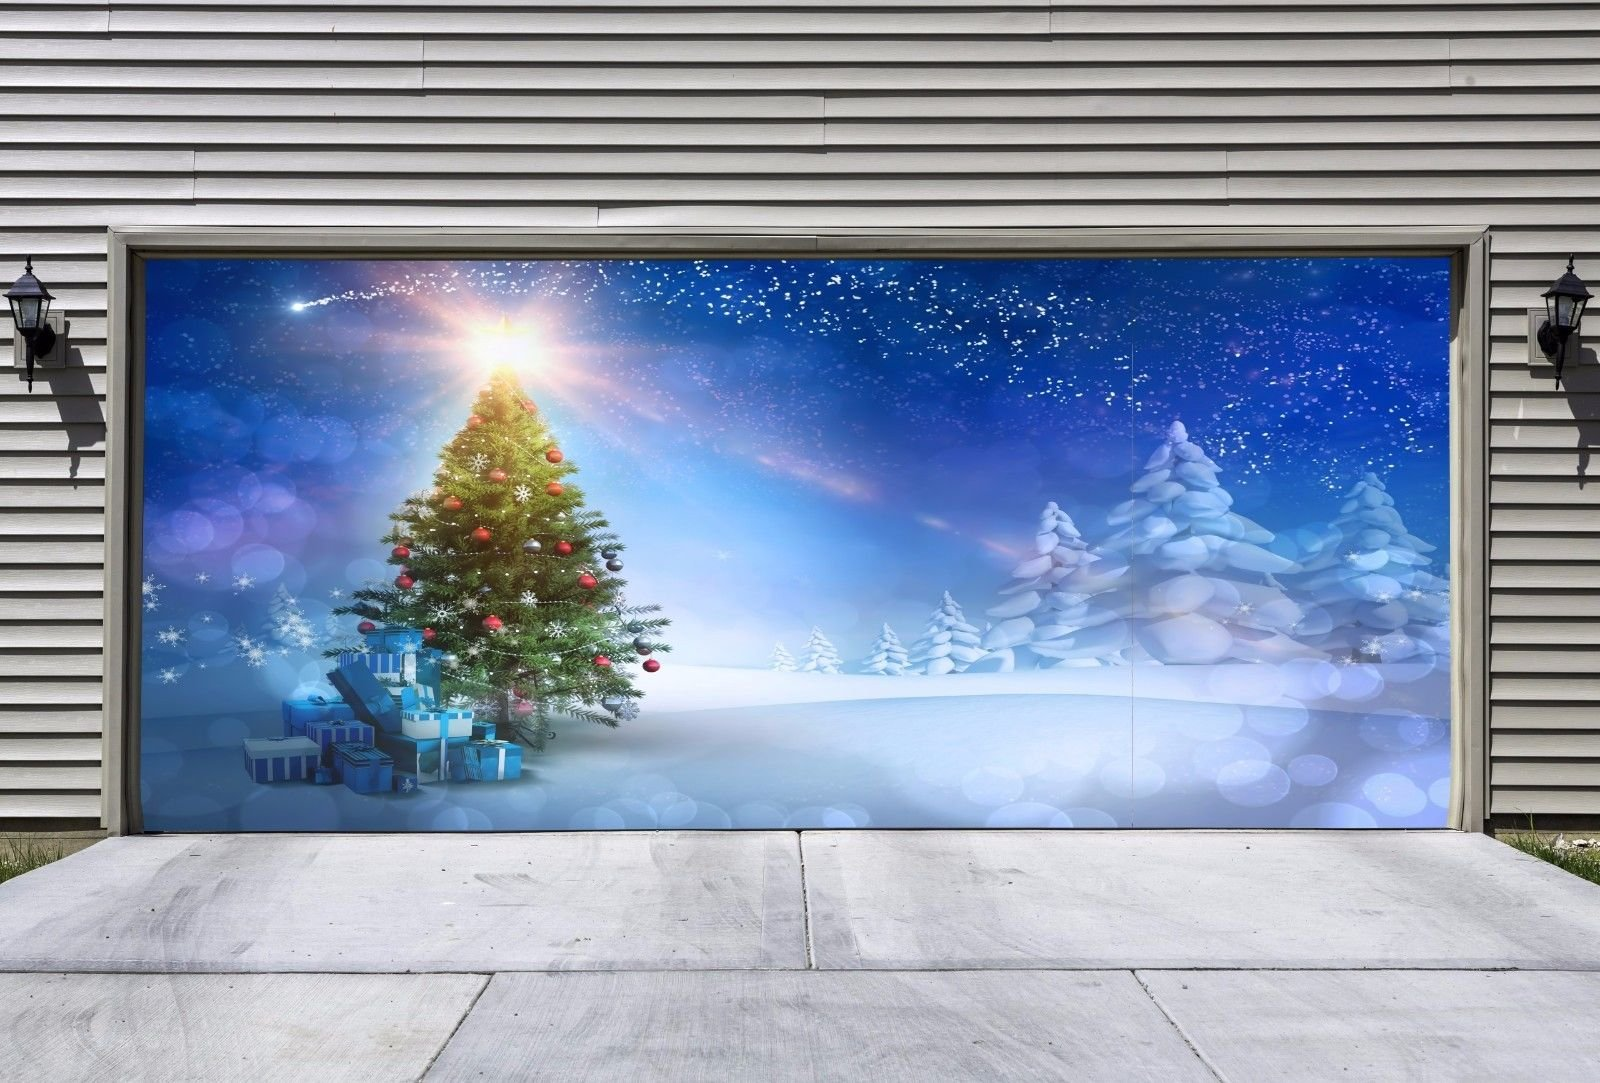 Christmas Tree Garage Door Covers Banners for 2 Car Outdoor Full Color House Billboard Garage Door Holiday Christmas Decor 3D Effect Murals Made In The USA size 82x188 inches DAV36